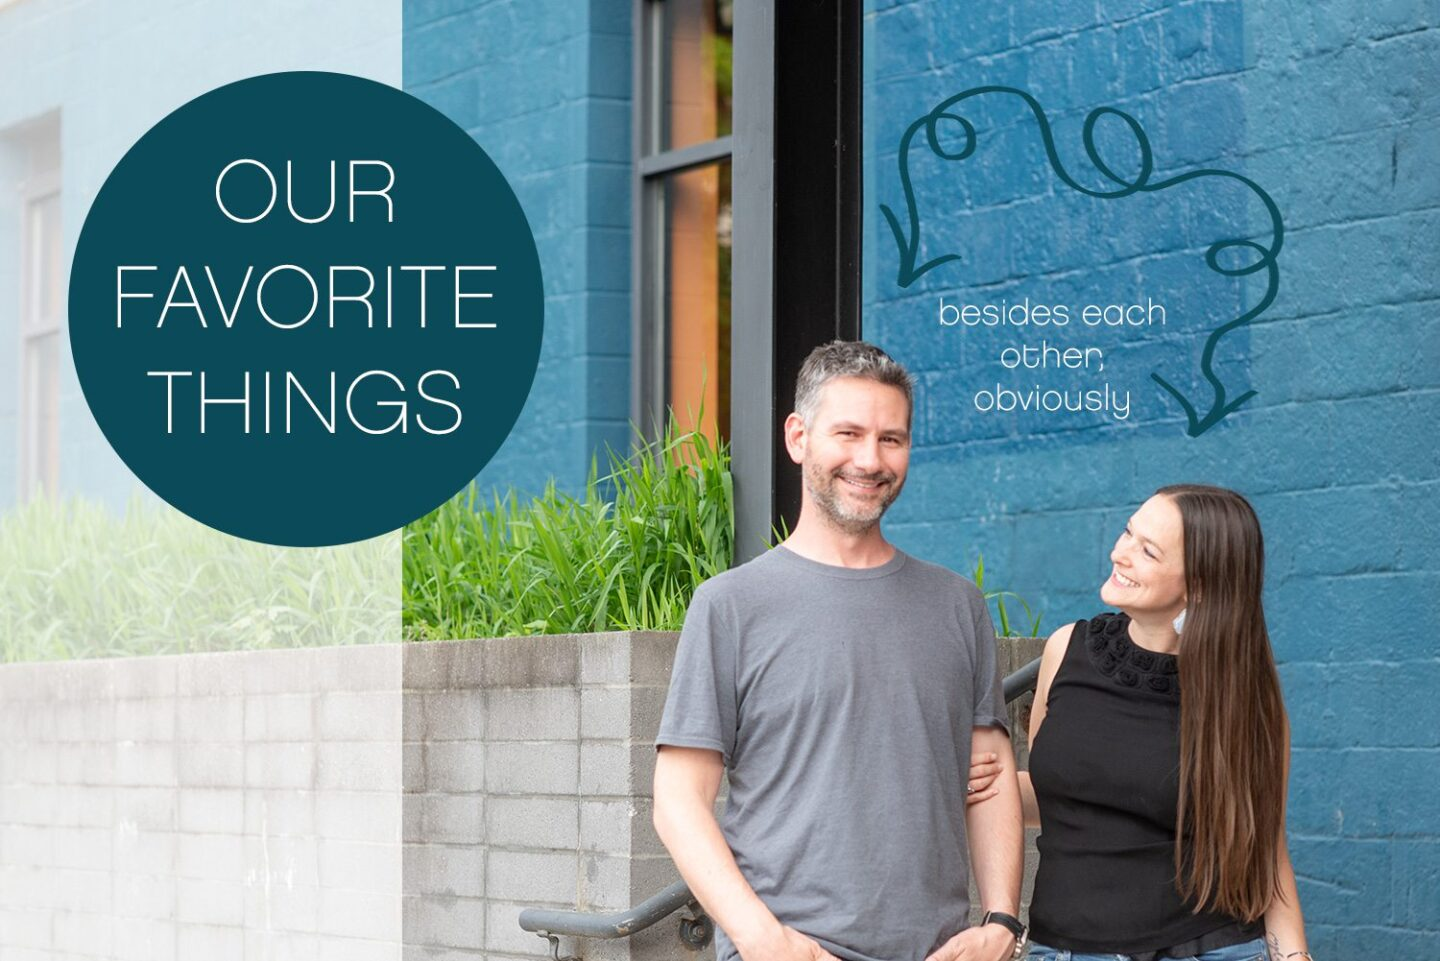 Our favorite products and services for small business by Dan and Mikkel from Sometimes Home travel blog, discussing lifestyle as well.